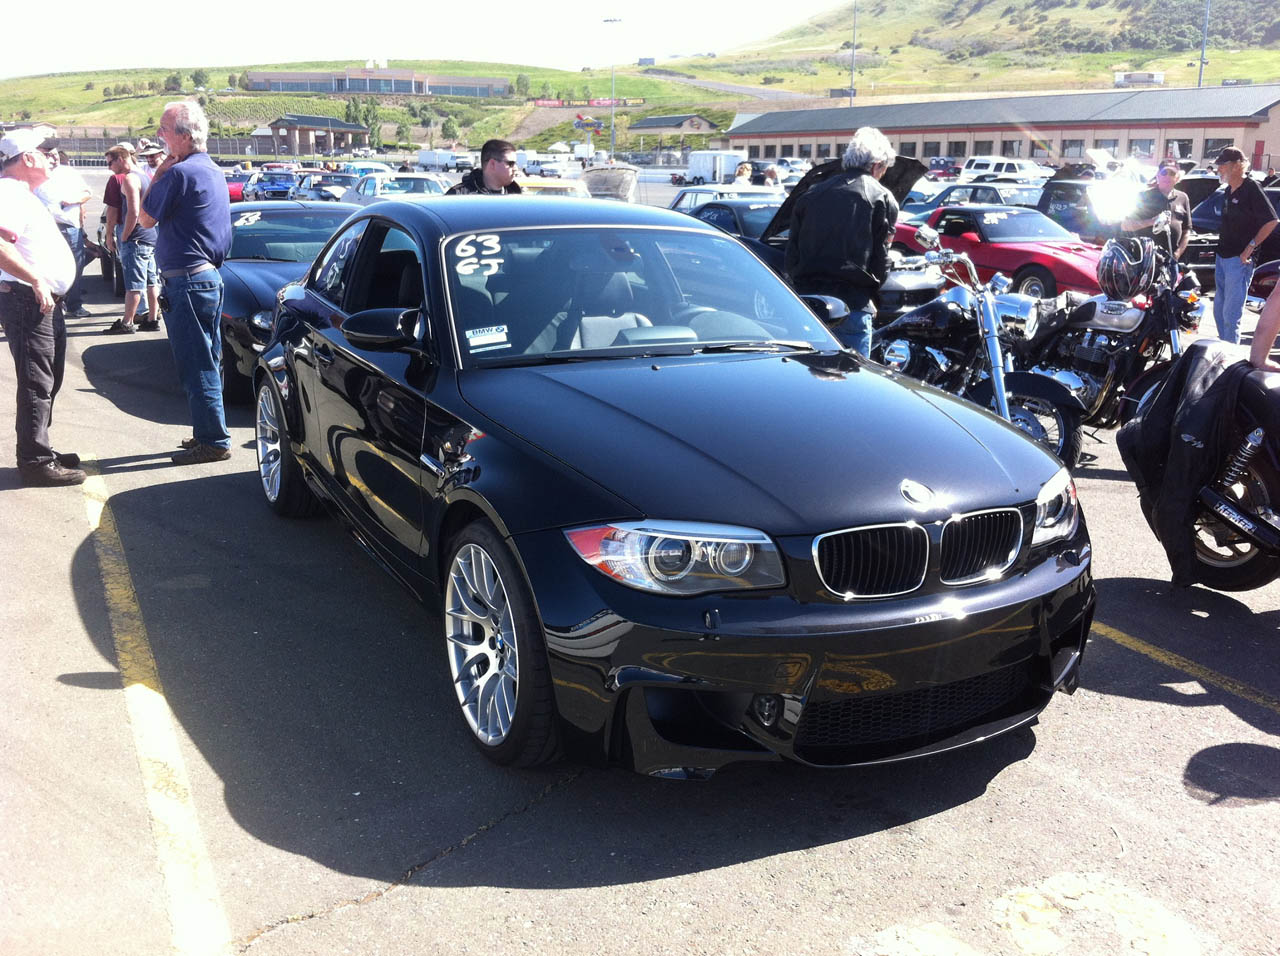 2011 Black Sapphire Bmw 1 Series M Pictures Mods Upgrades Wallpaper Dragtimes Com